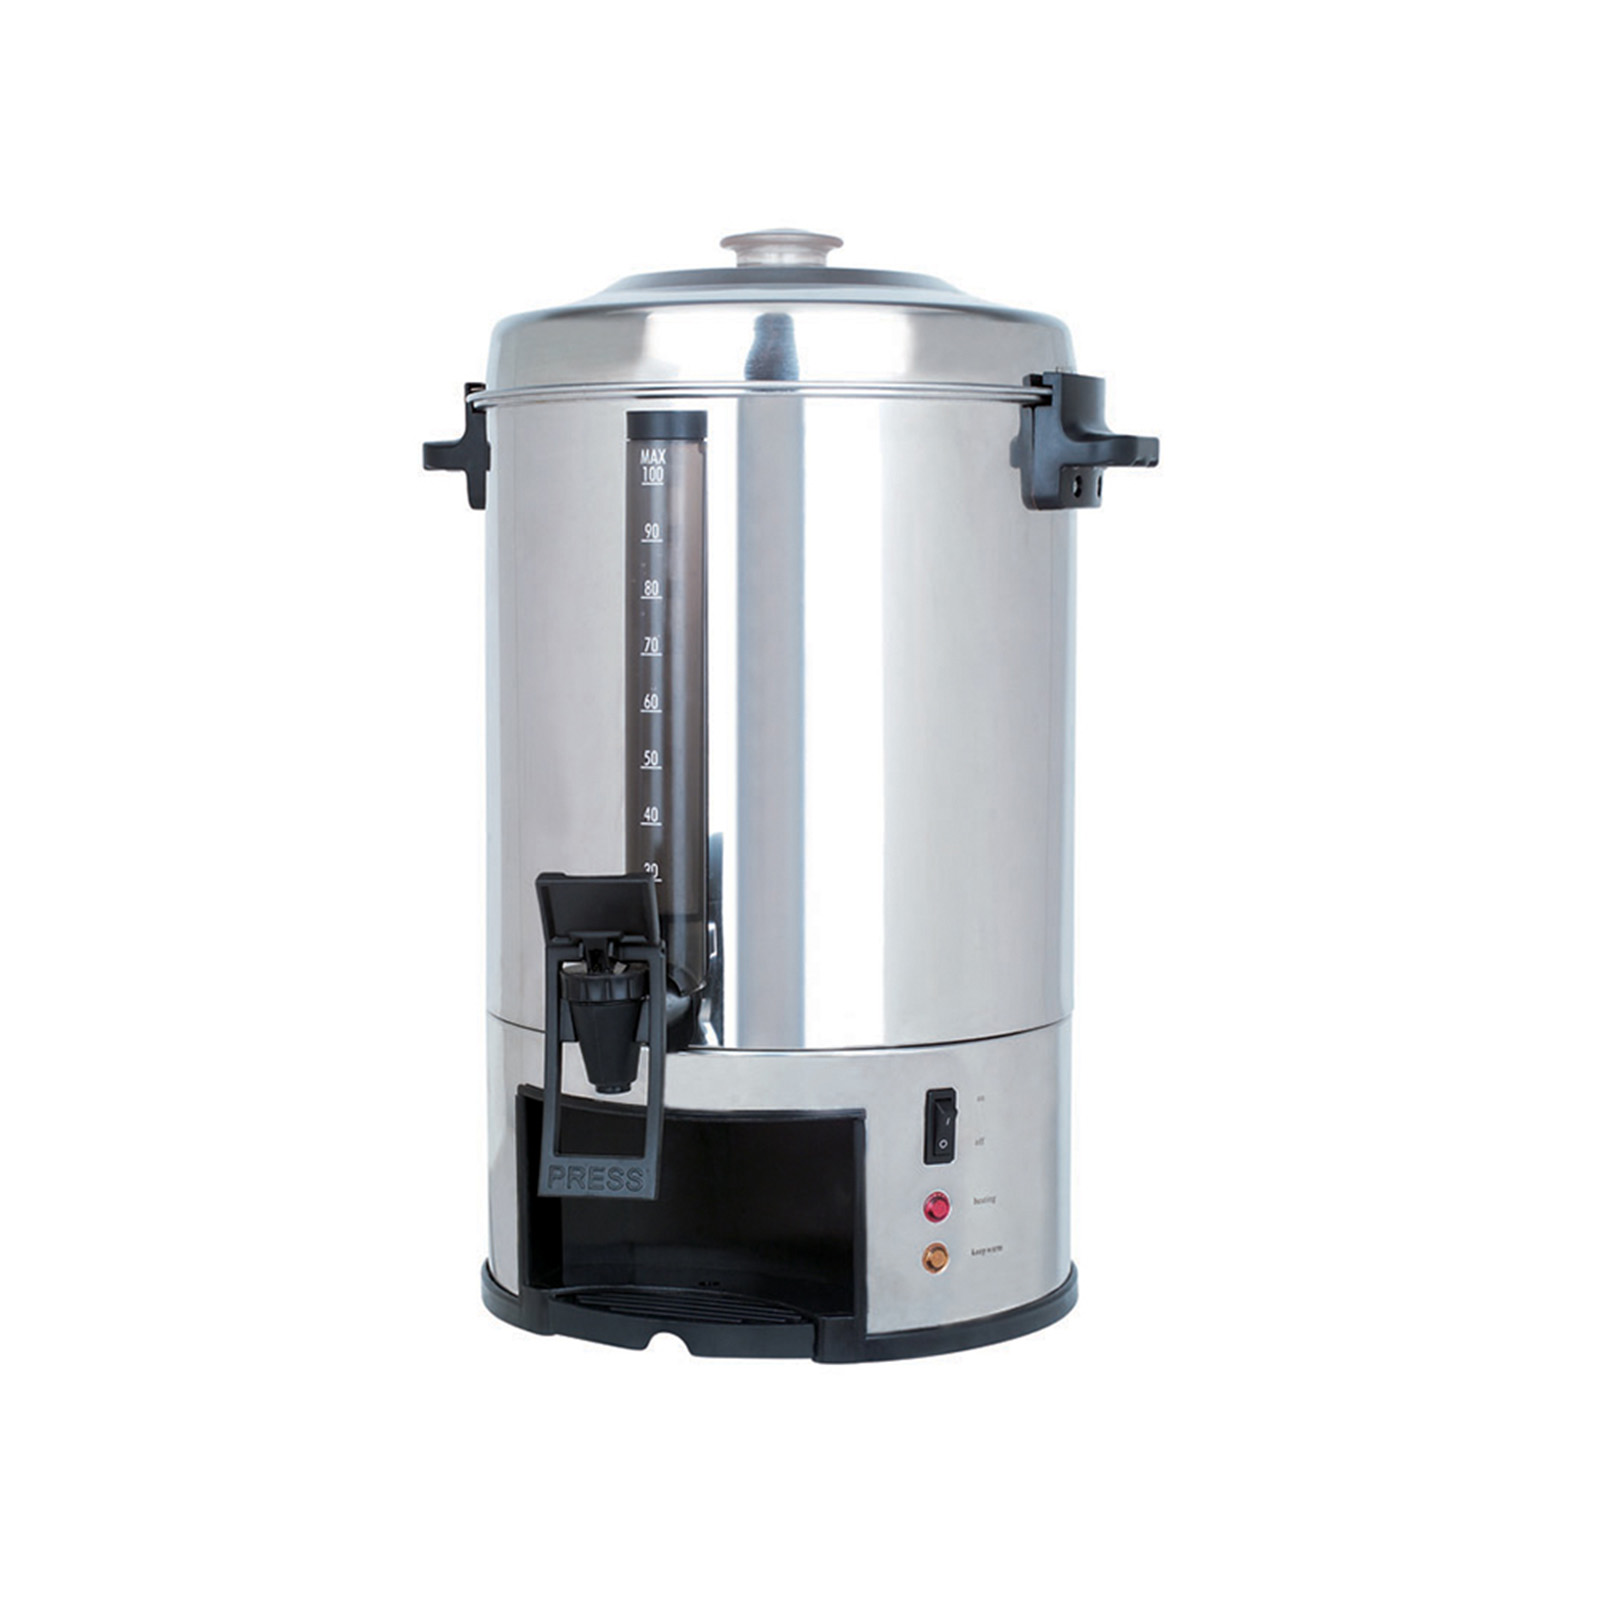 Chef 97089564m 100 Cup Stainless Steel Coffee Urn